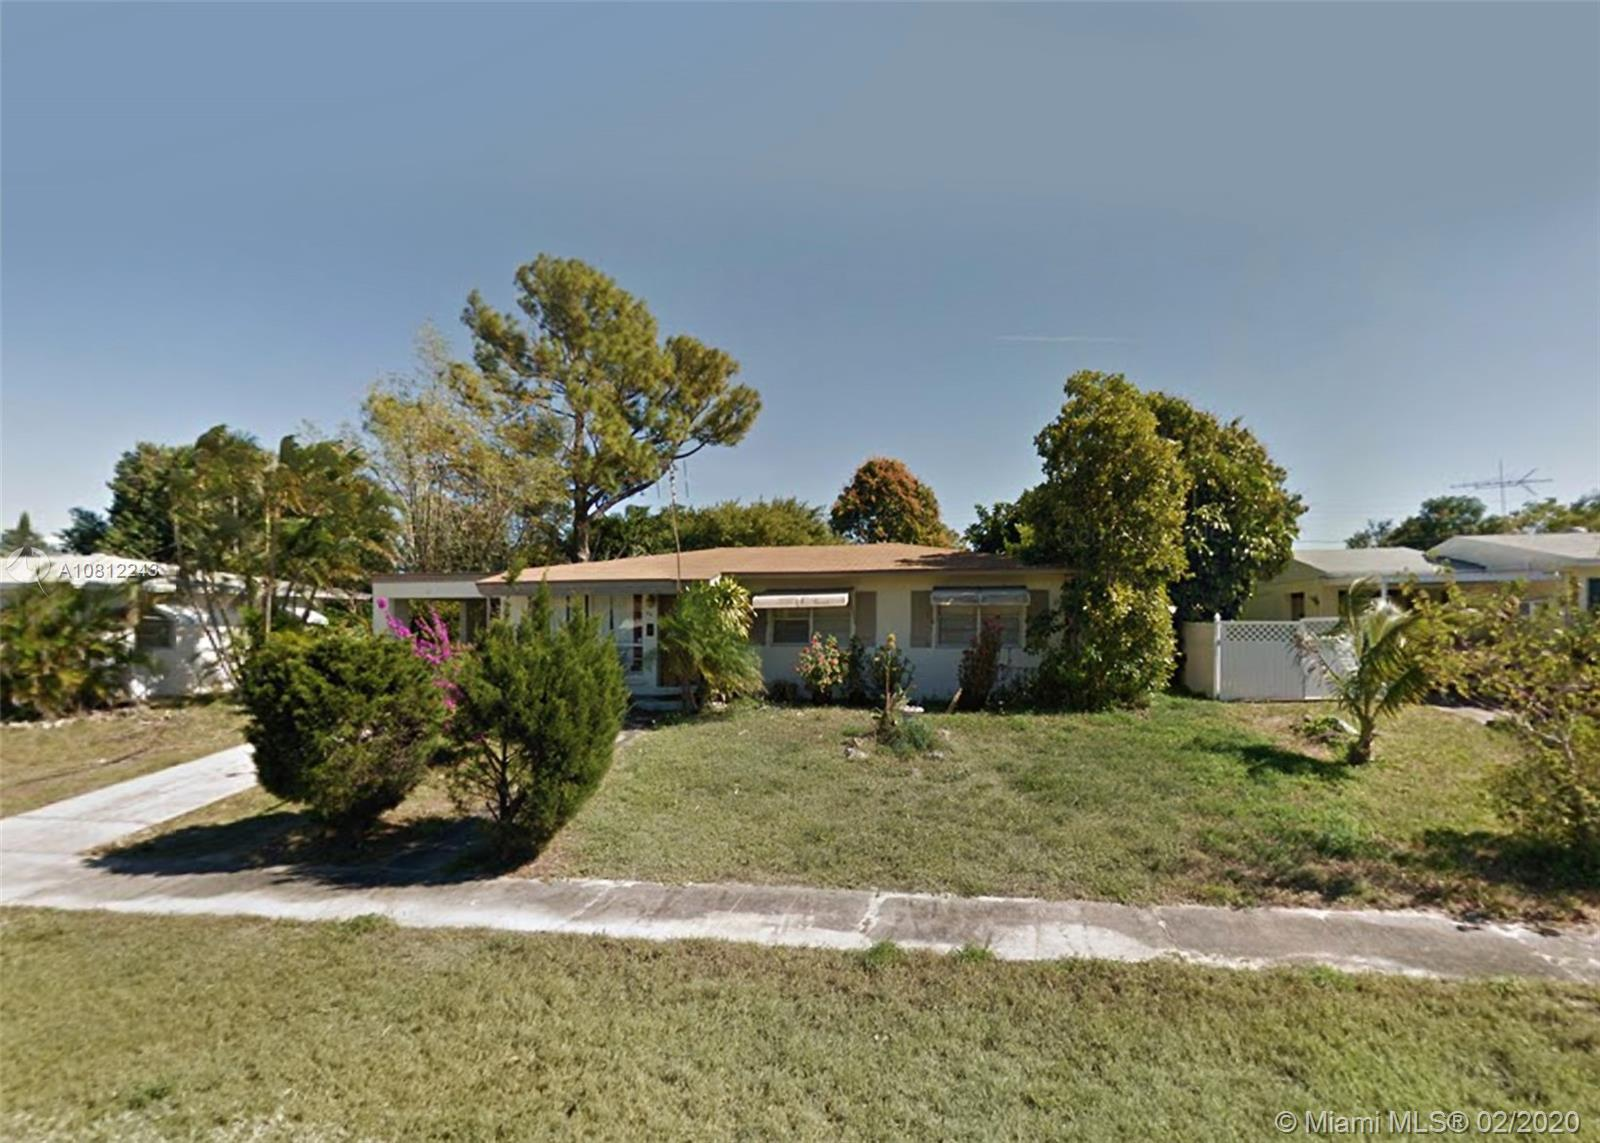 814 Small Dr, Lake Worth, FL 33461